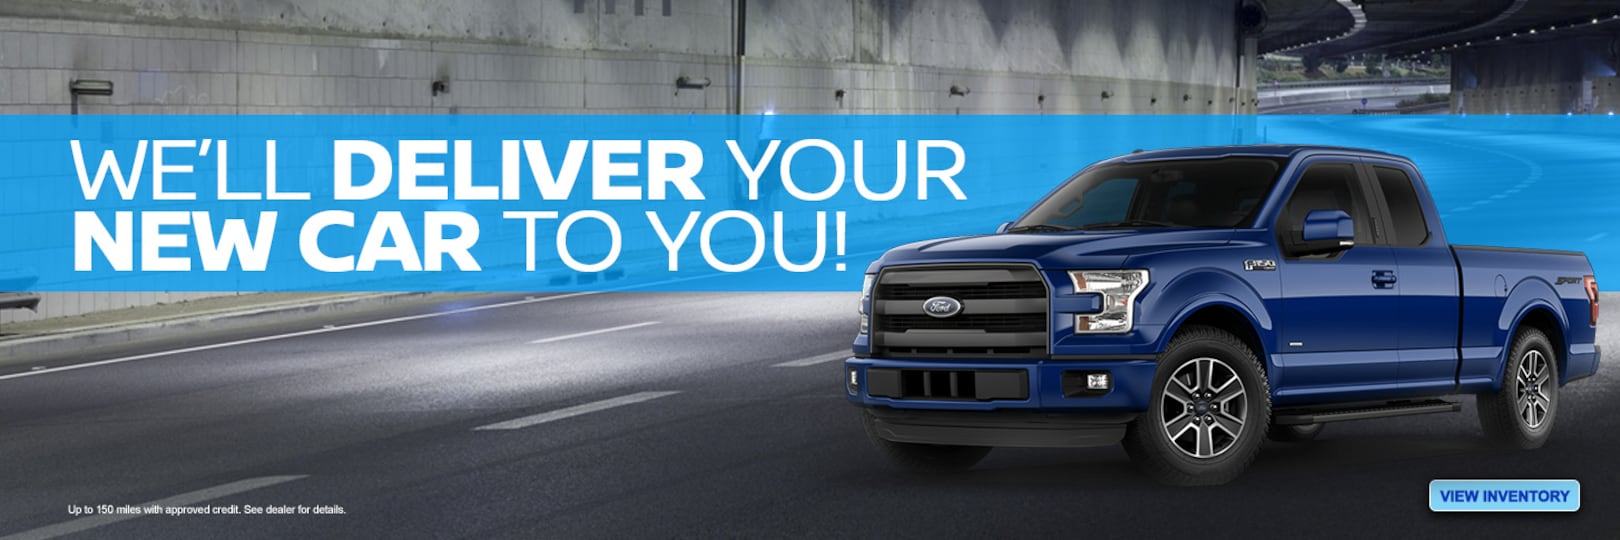 Ford Dealership Montgomery Al >> Tony Serra Ford | Ford Dealership and Used Cars in ...